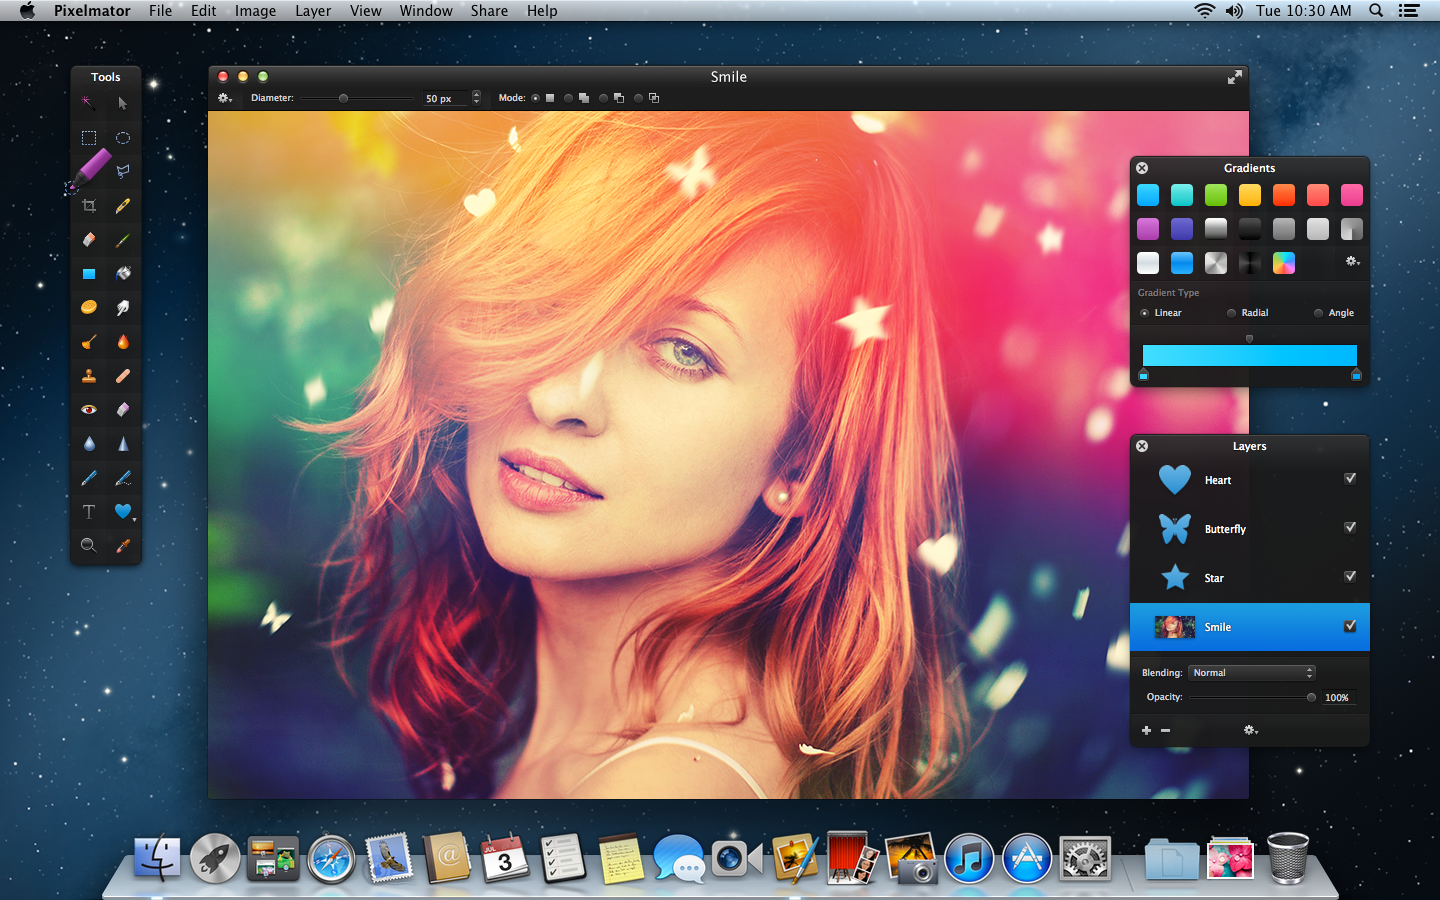 Graphics editing app Pixelmator receives large 'Blueberry' update with new shape tools, effects, and more